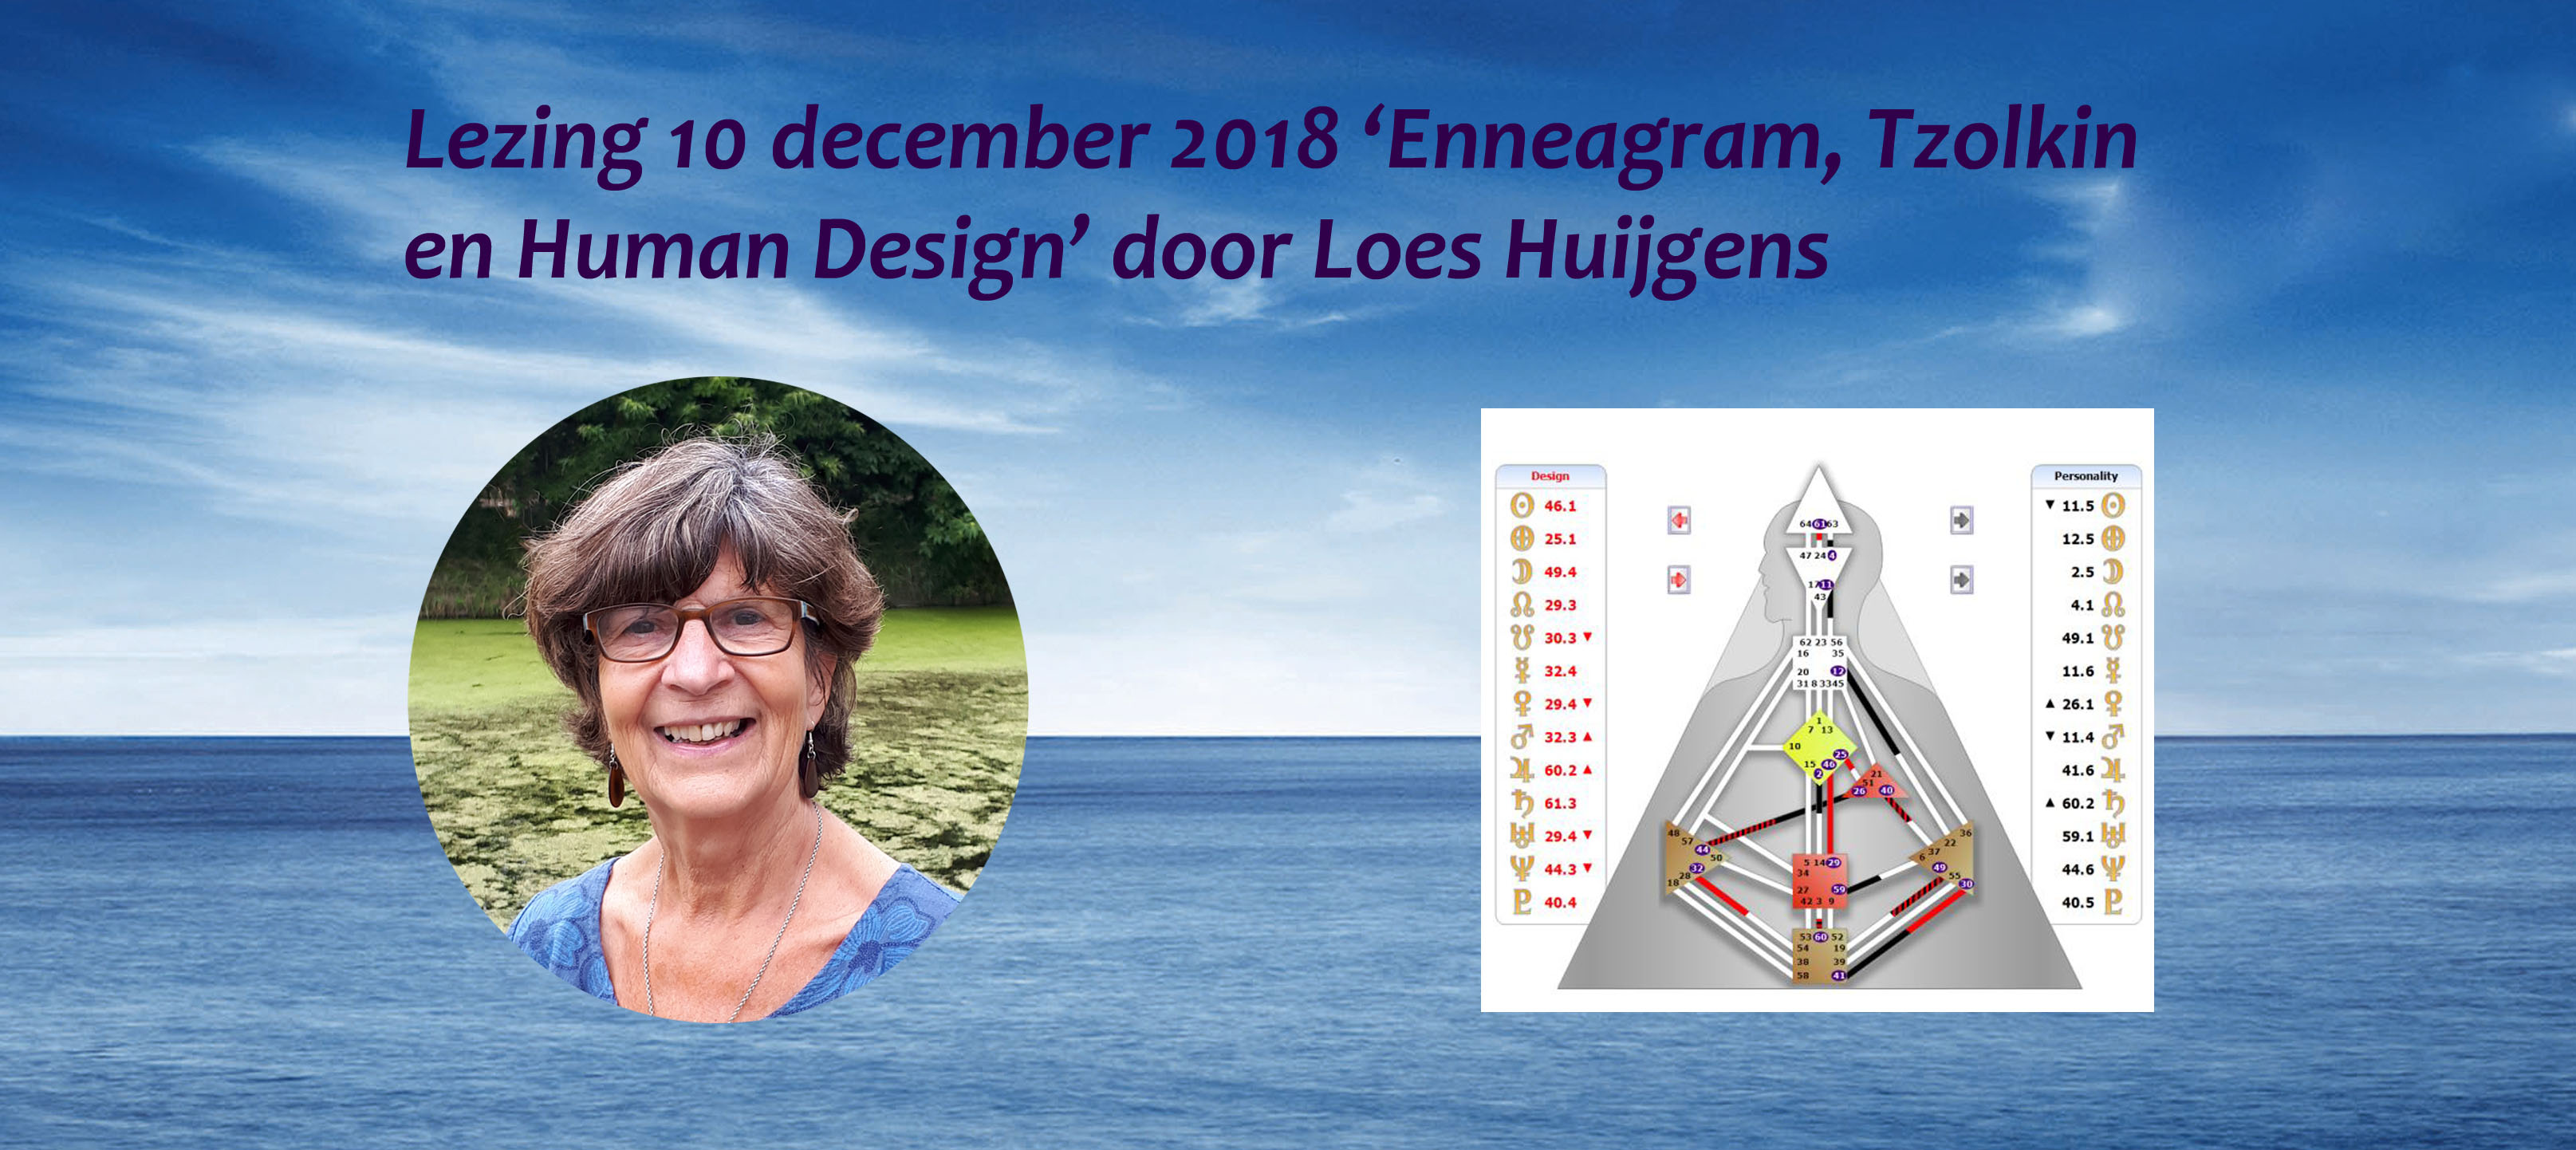 Lezing door Loes Huijgens over Enneagram, Tzolkin en Human Design